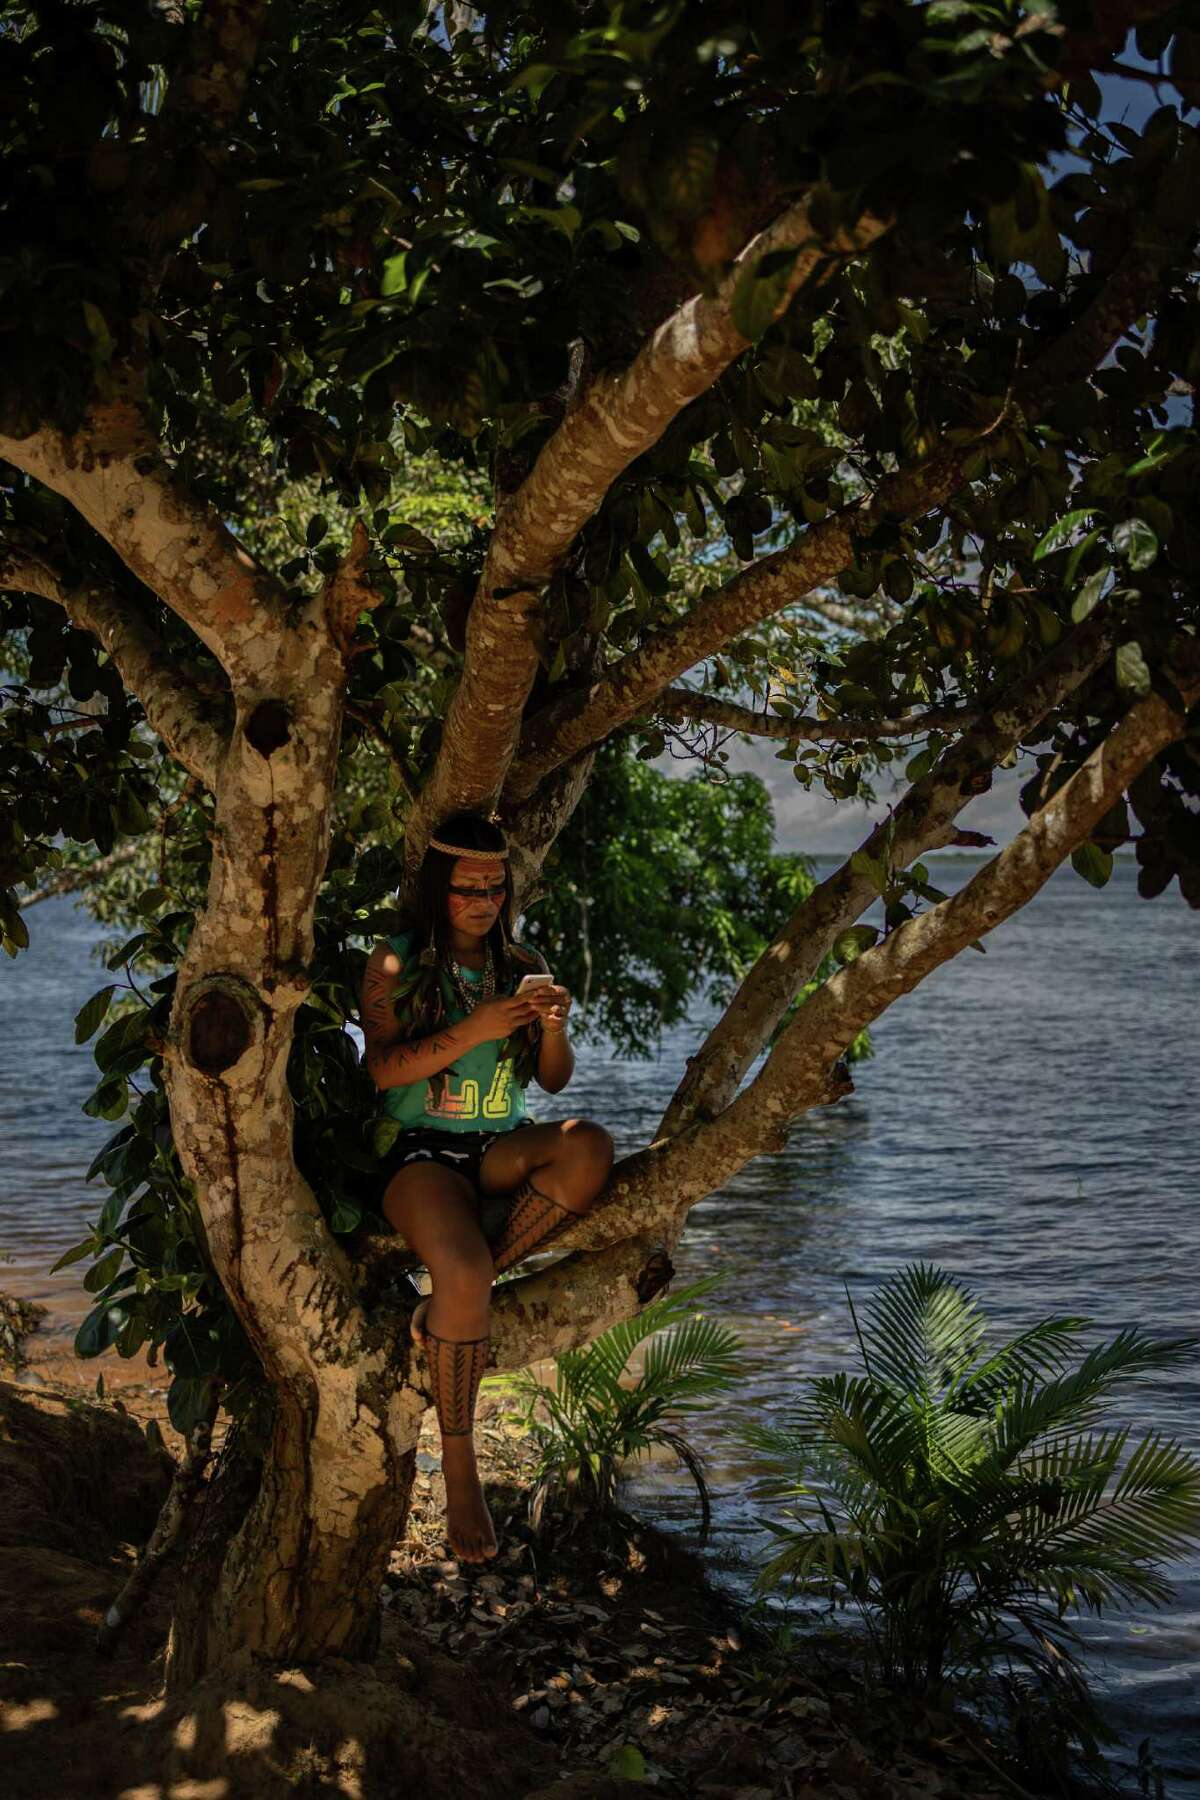 Maira Tatuyo, 22, an indigenous digital influencer with more than 5 million TikTok followers, sits in a tree while posting to her profile in Manus, Brazil, on July 10, 2021.